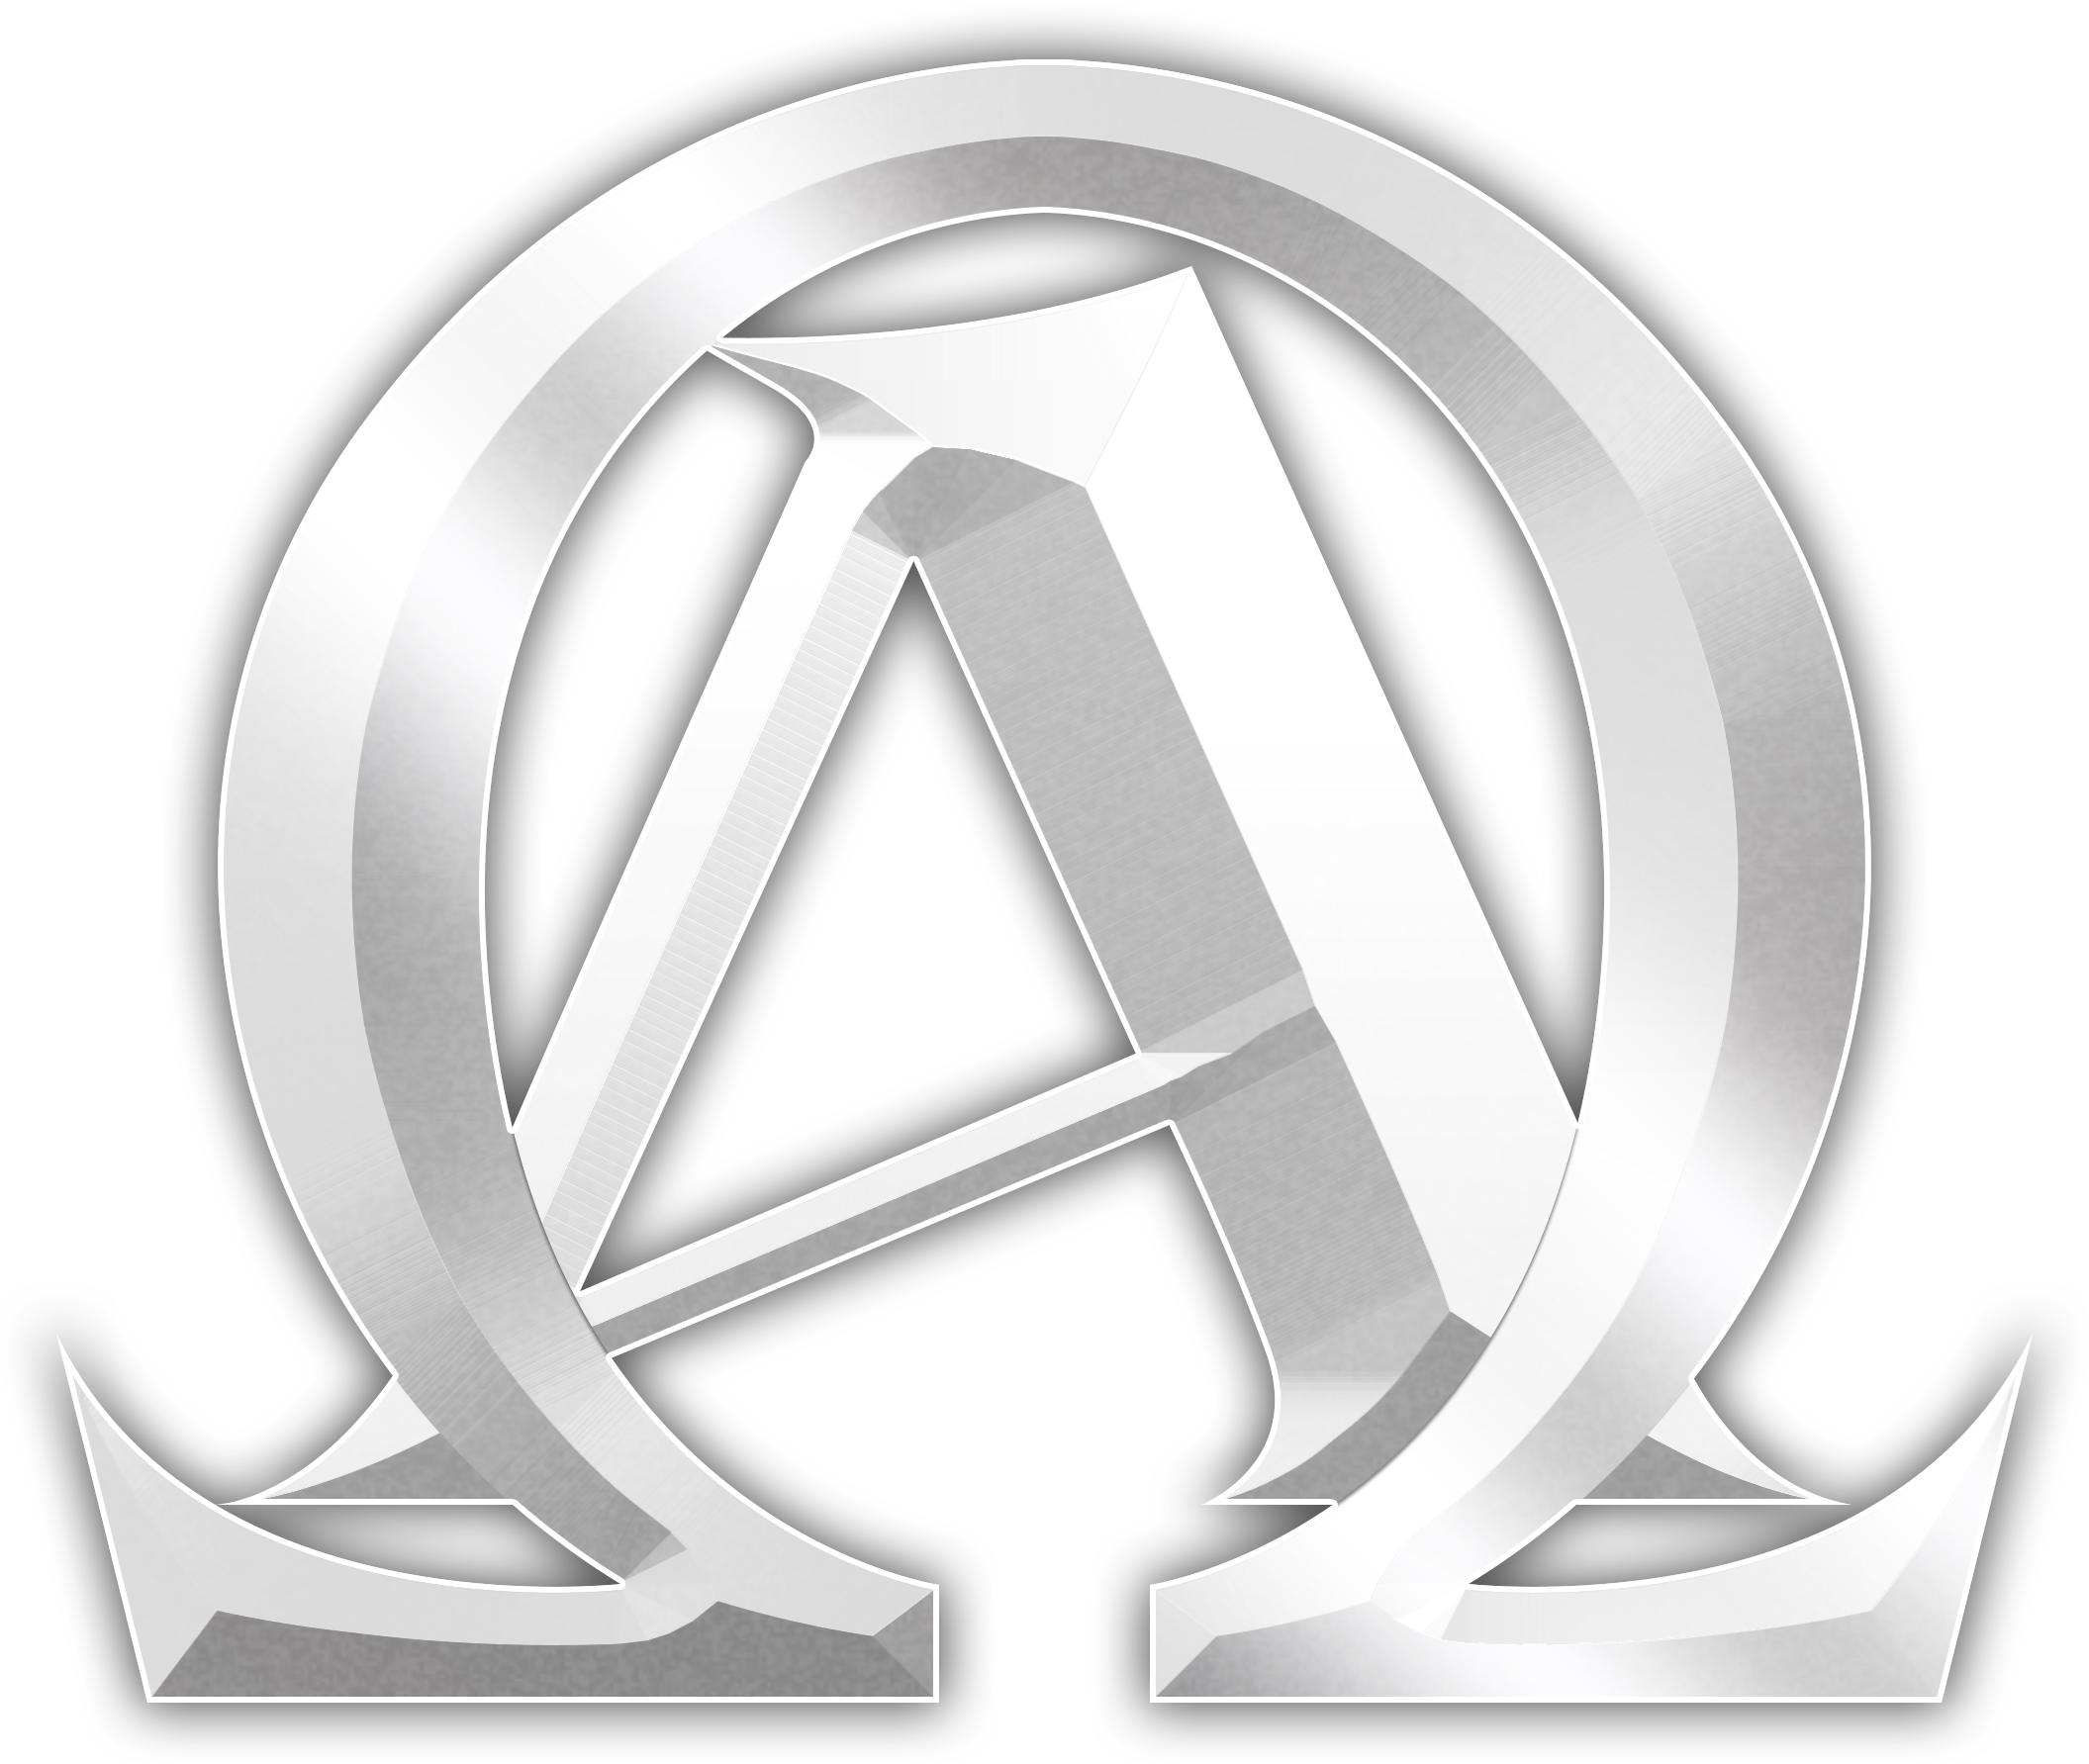 Alpha omega more holy than the latin cross more sacred than any scripture yet most people who read the bible have no idea of its existence proof of the alpha omega buycottarizona